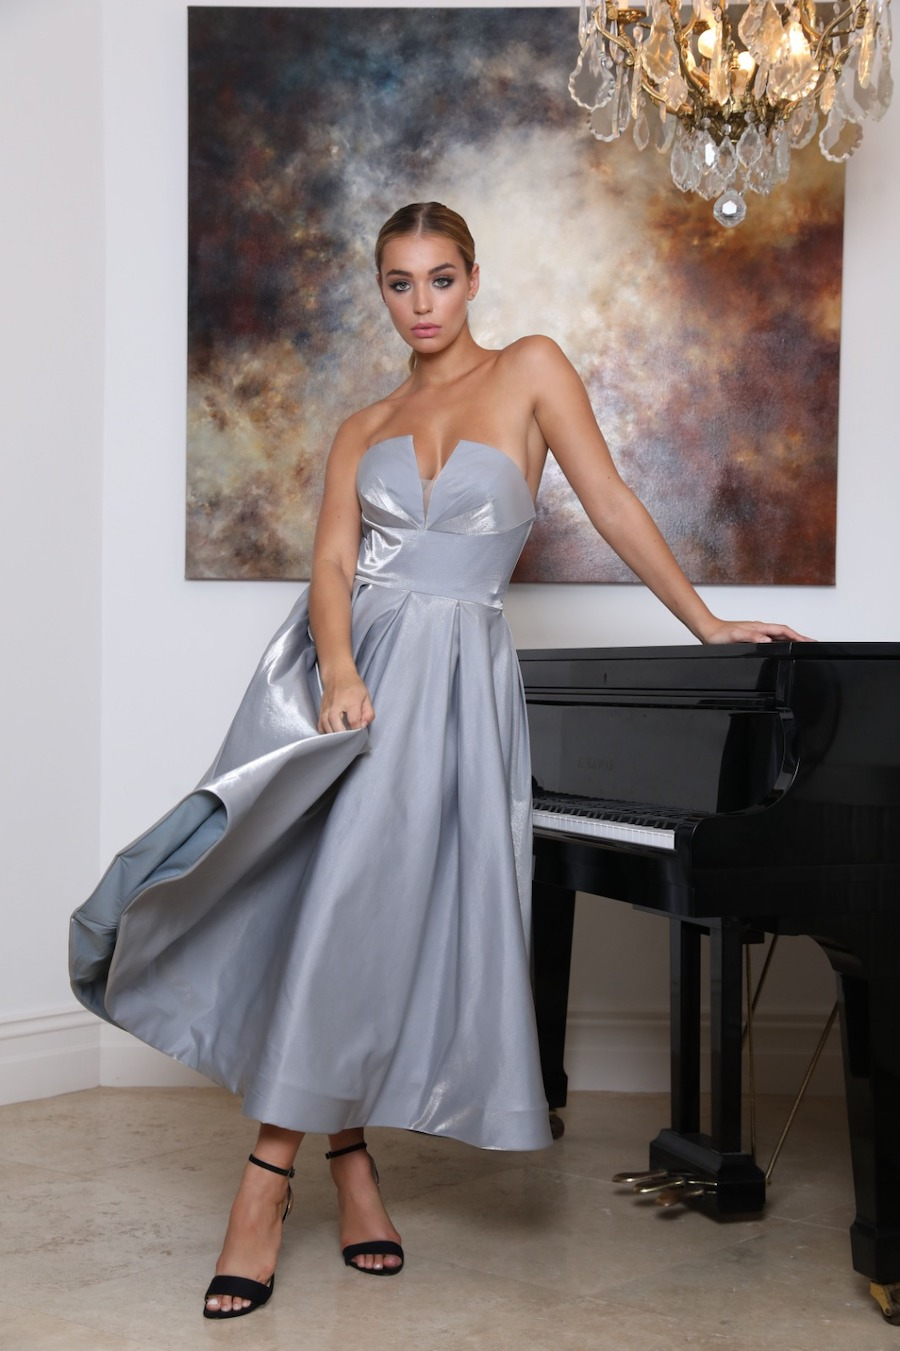 Strapless dress with fitted bodice and full tea length skirt